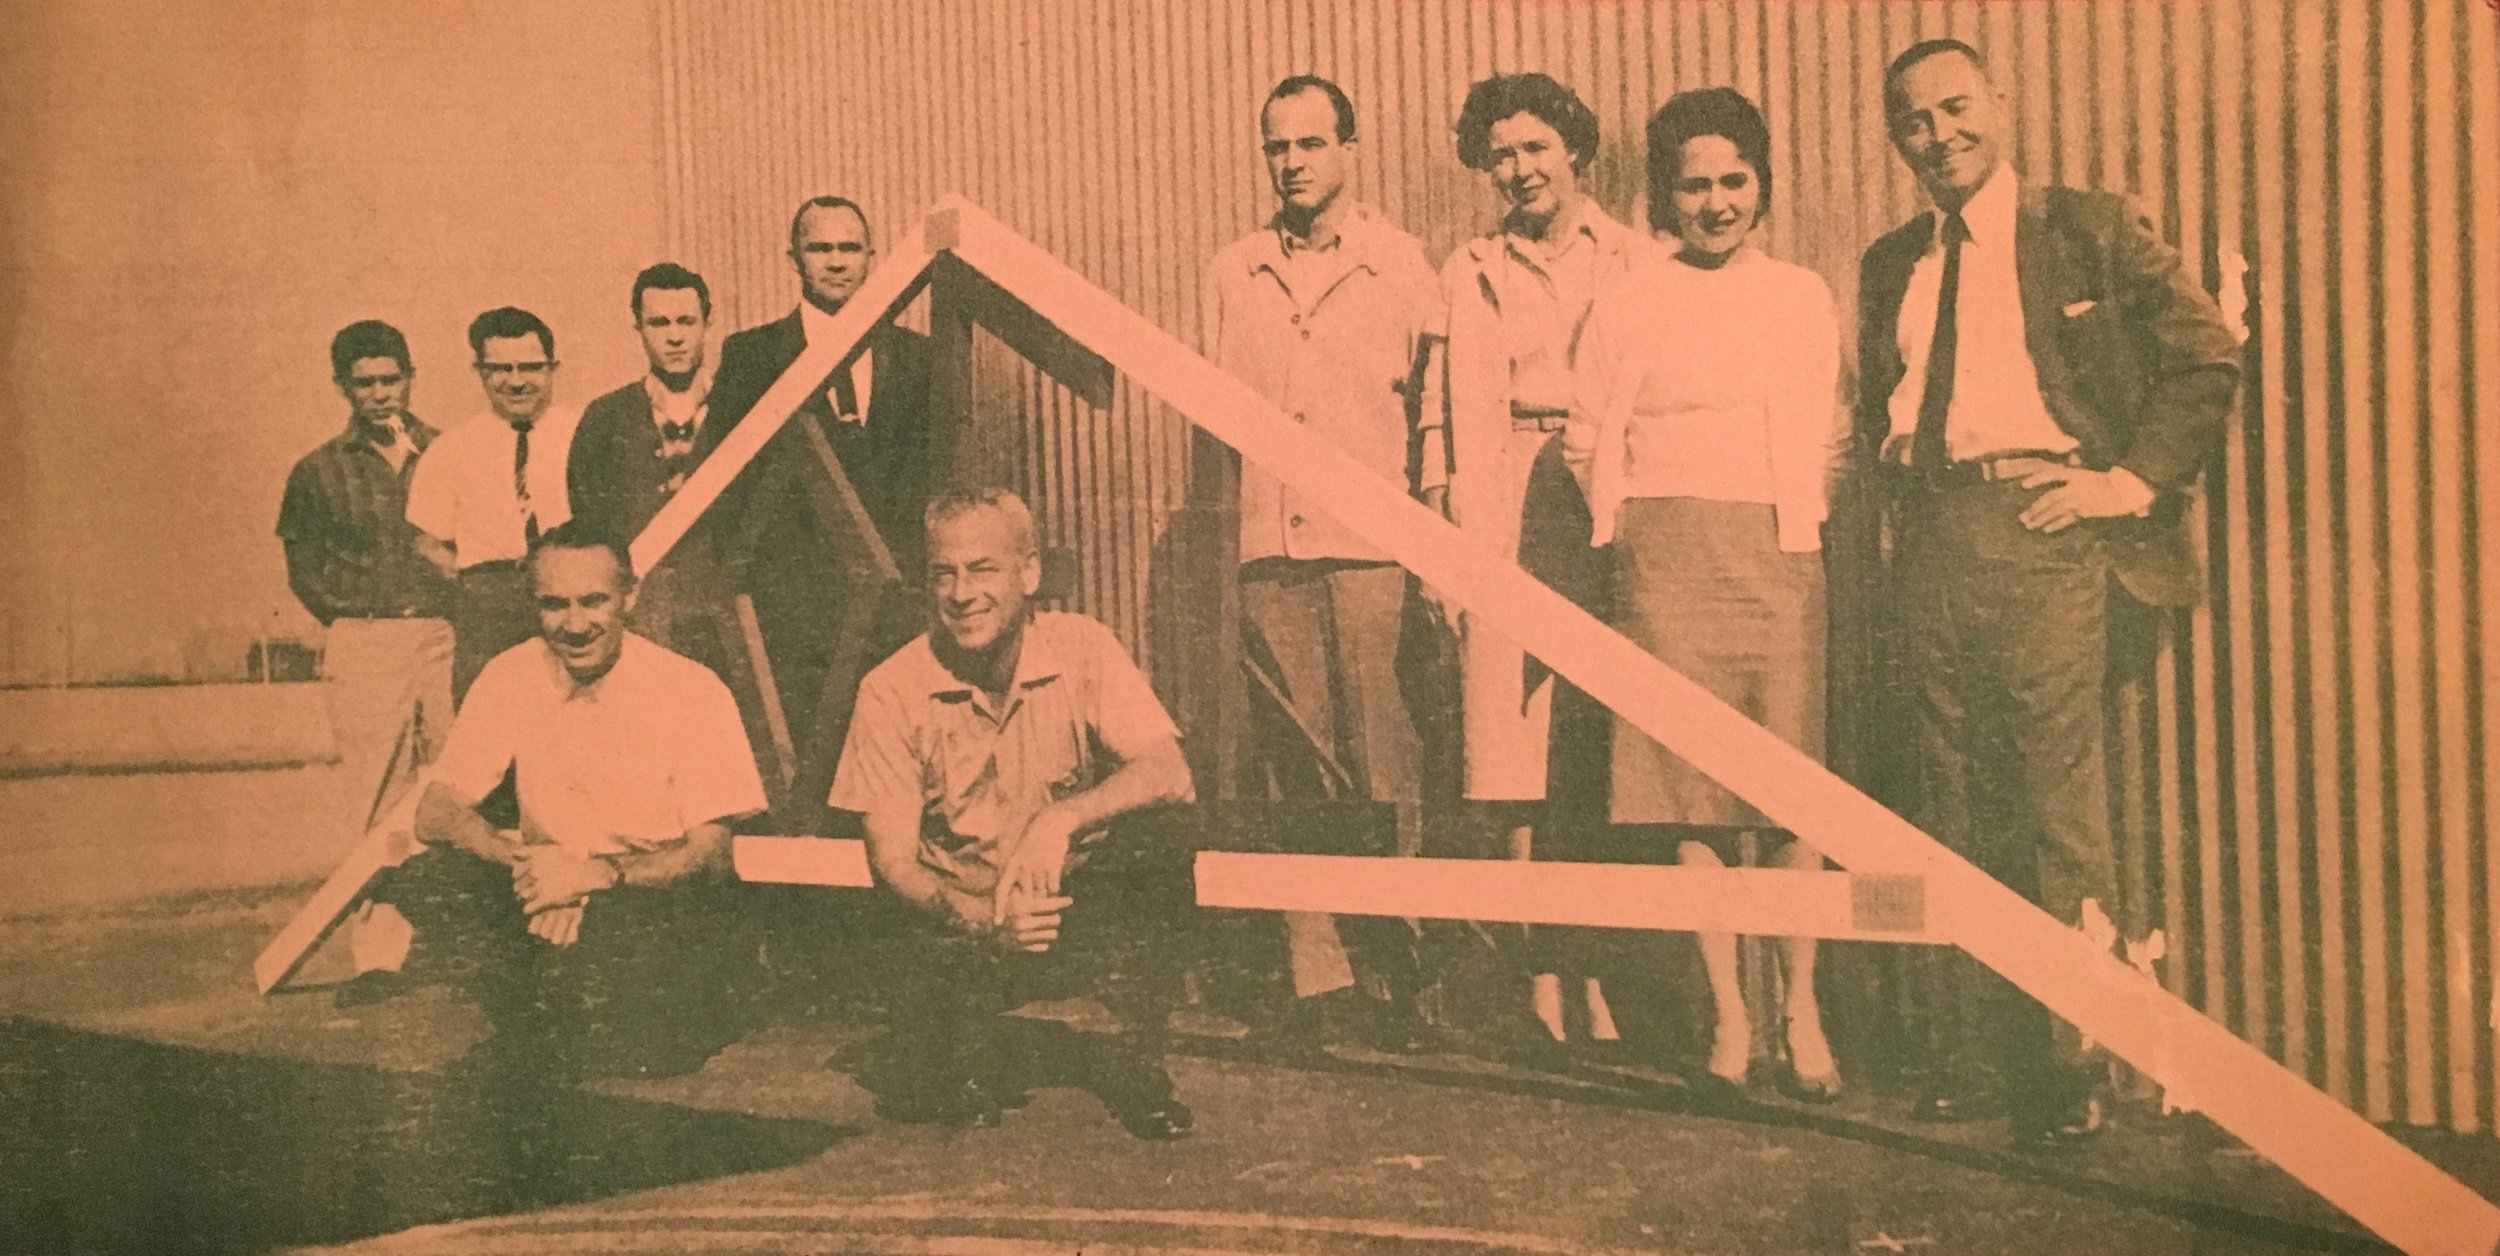 Tom Lyster on the right with Gang Nail Truss. This is the company that invented the Gang Nail plate that gets pressed into the lumber at the connection of the adjoining wood members.